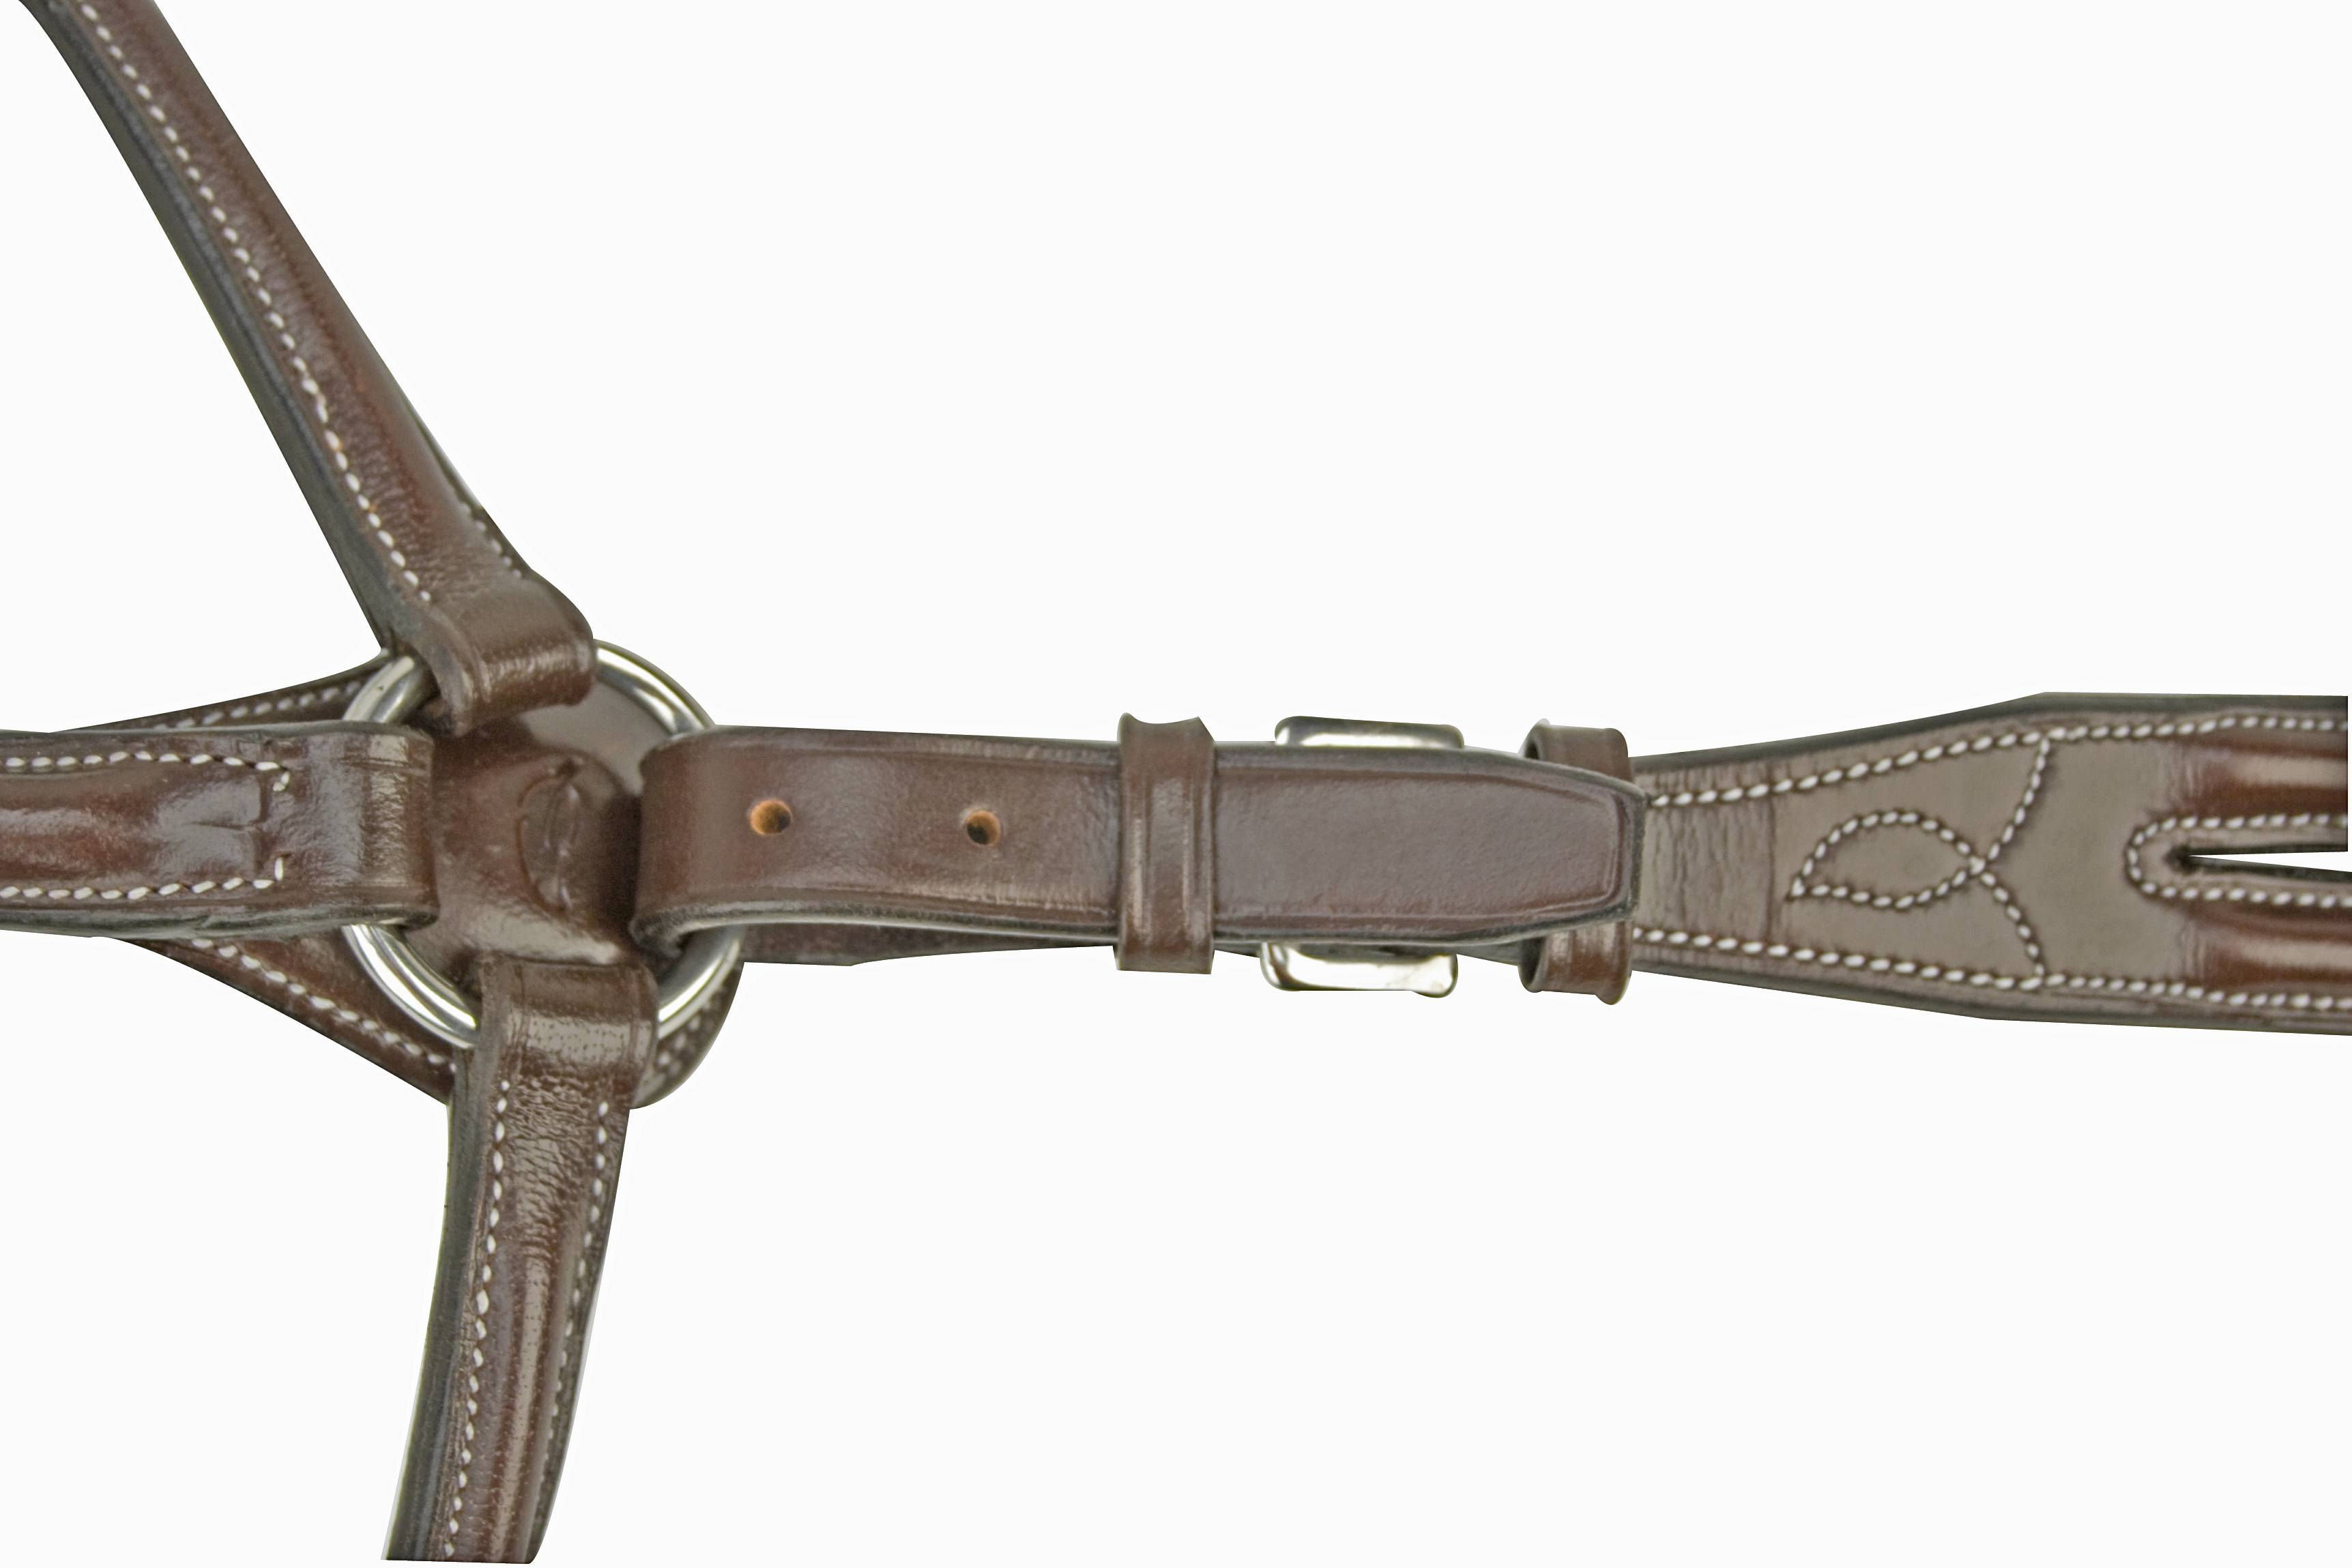 Silverleaf Plain Raised Breastplate with Standing Attachment